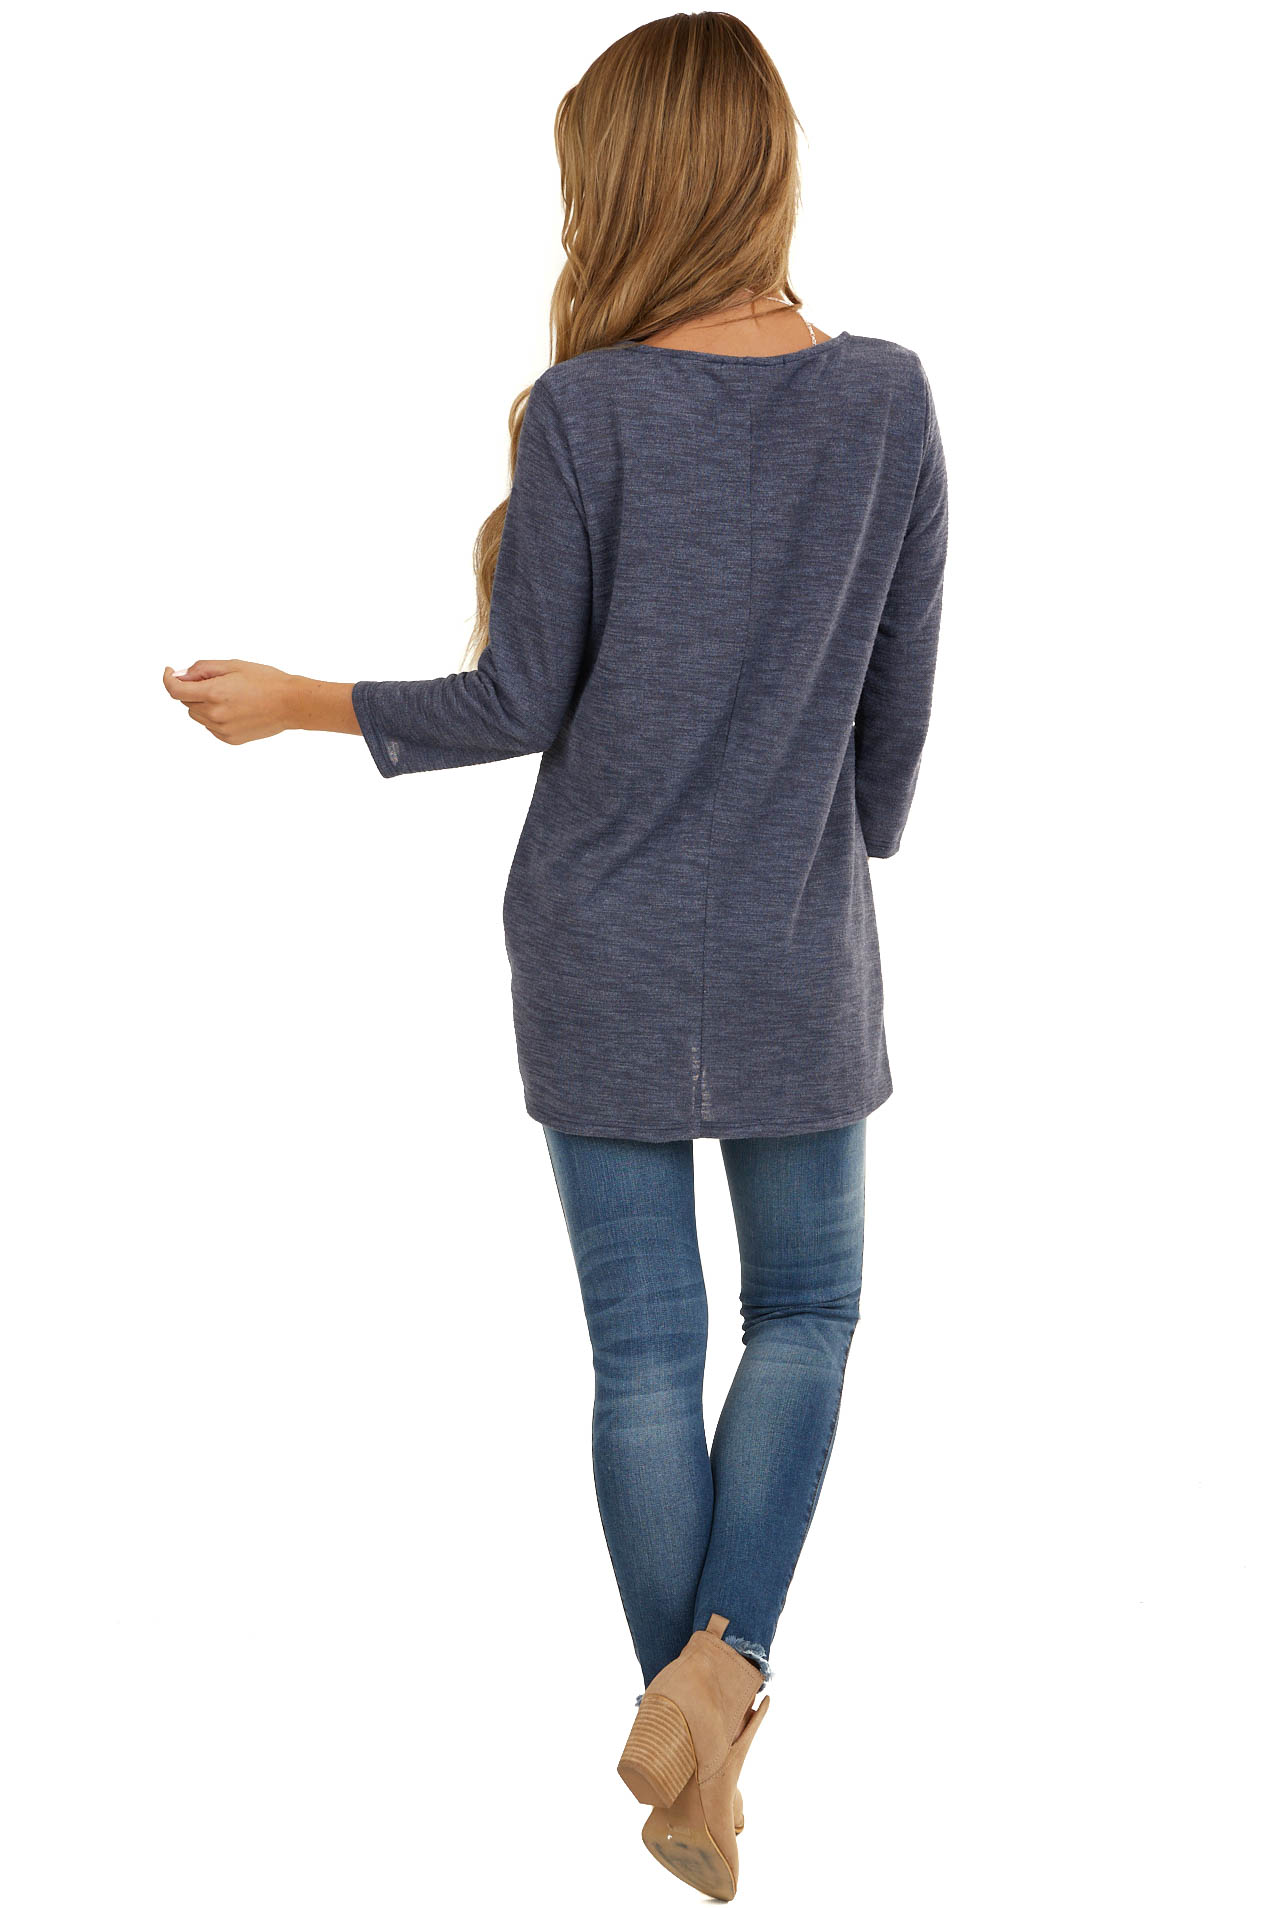 Heathered Navy Blue 3/4 Sleeve Top with Twisted Hem Detail